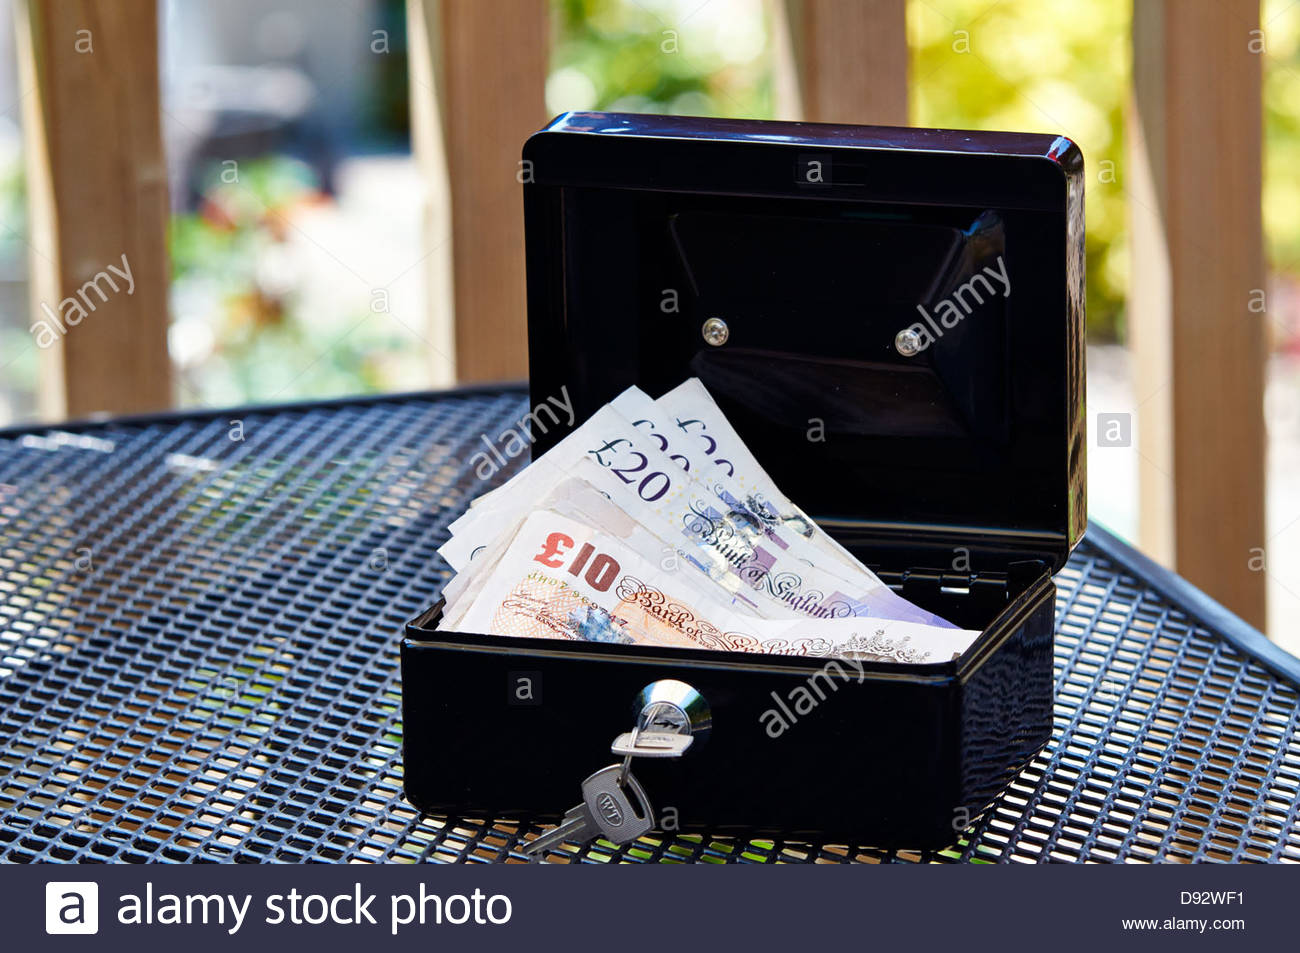 a black metal cash box with keys in lock and filled with british 10 and 20 pound notes - Stock Image